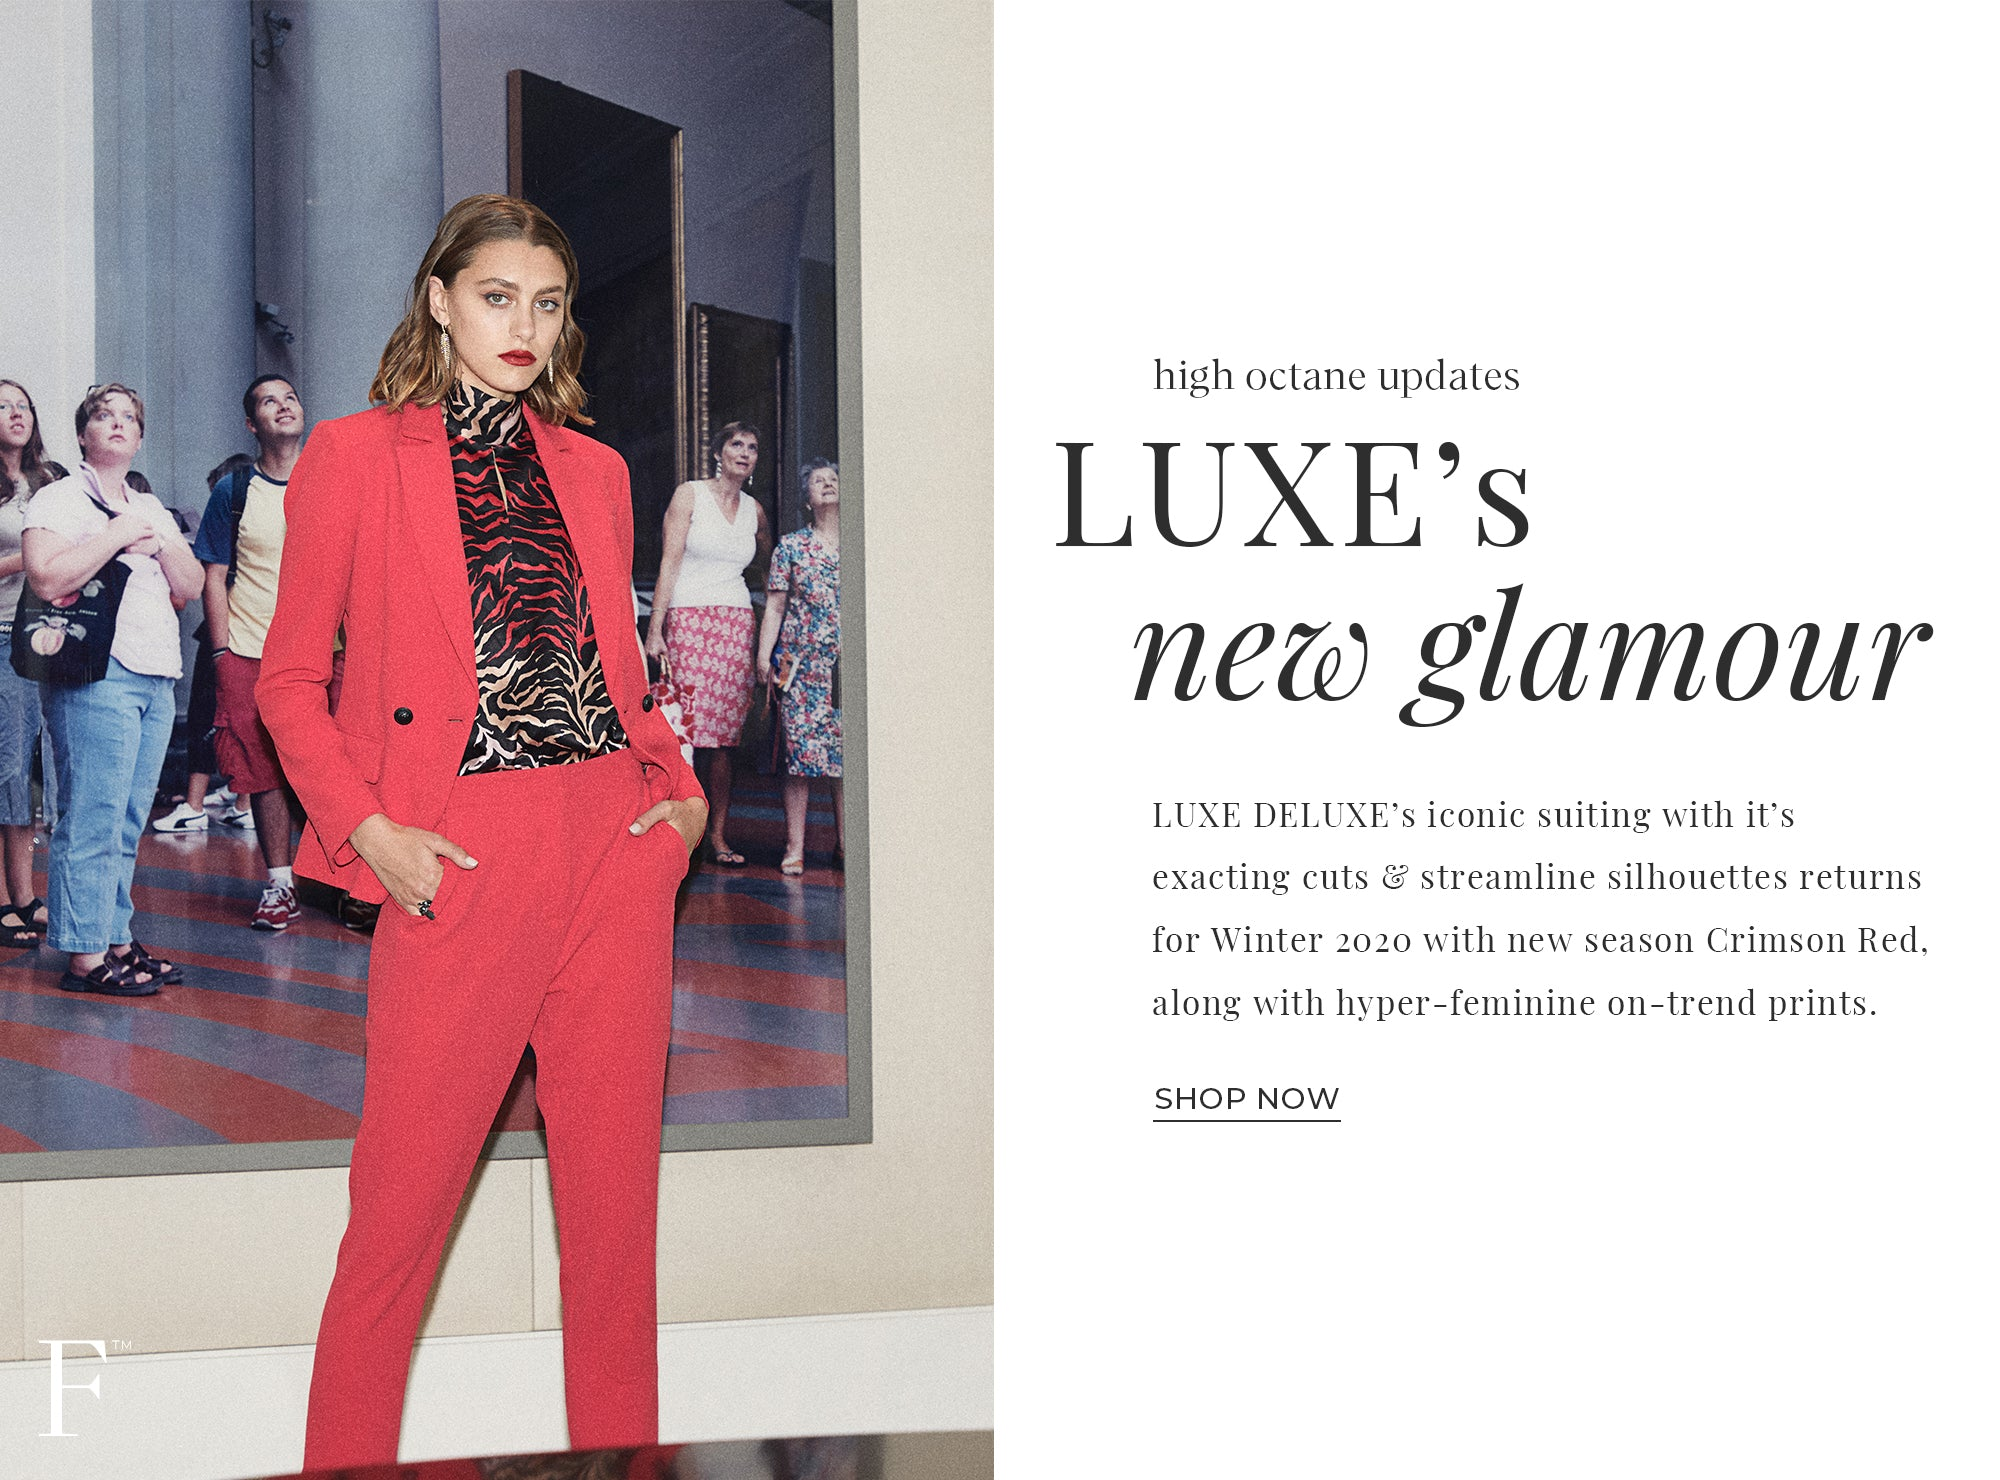 LUXE'S NEW GLAMOUR